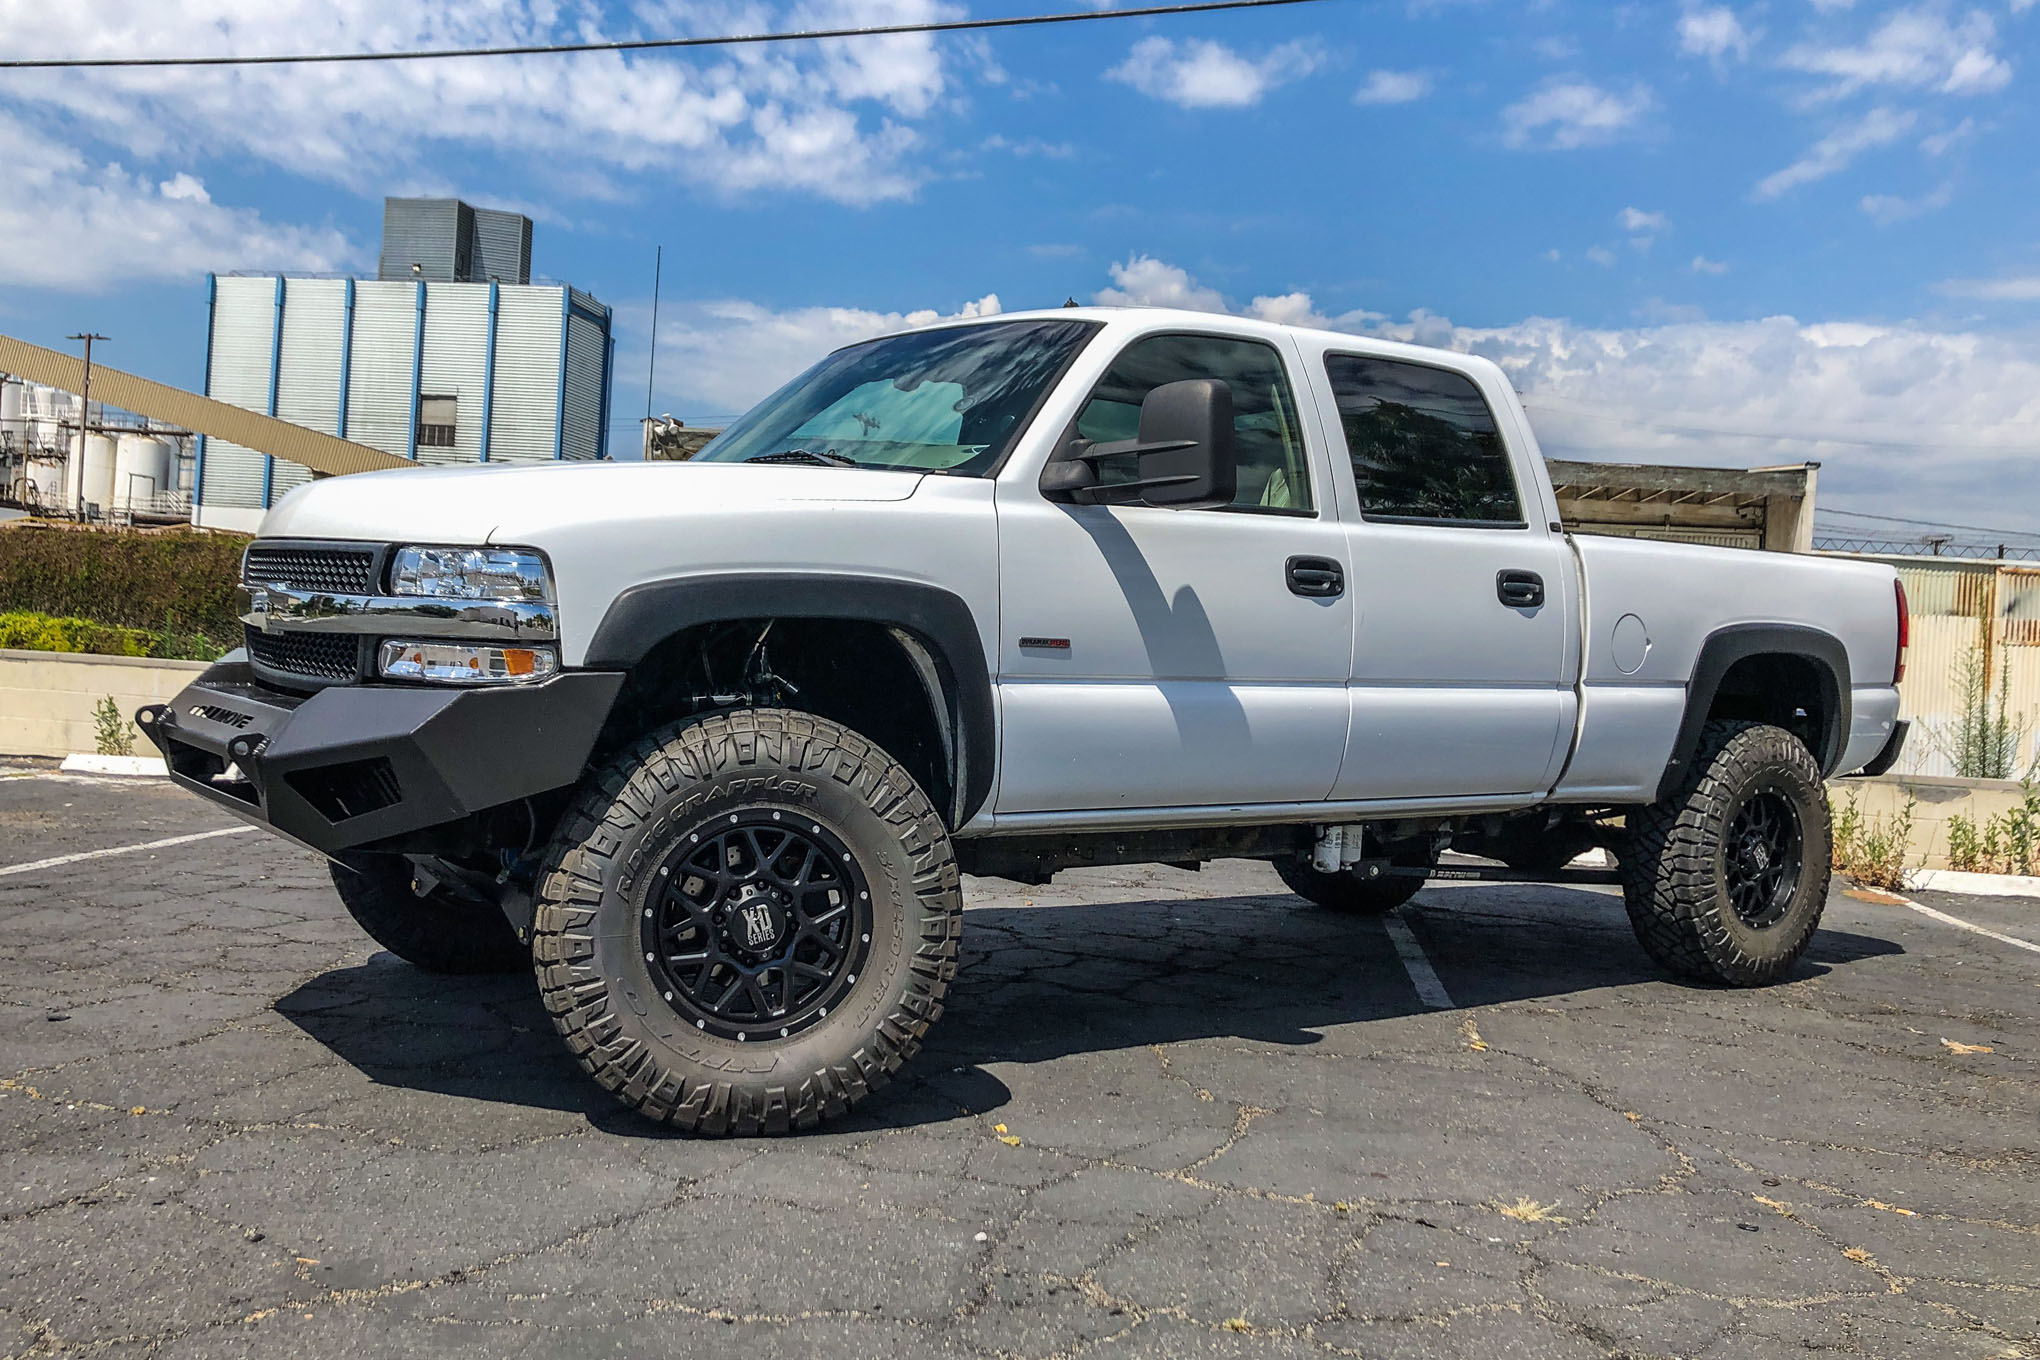 Chevy Silverado Ppe Forged Steering Upgrade